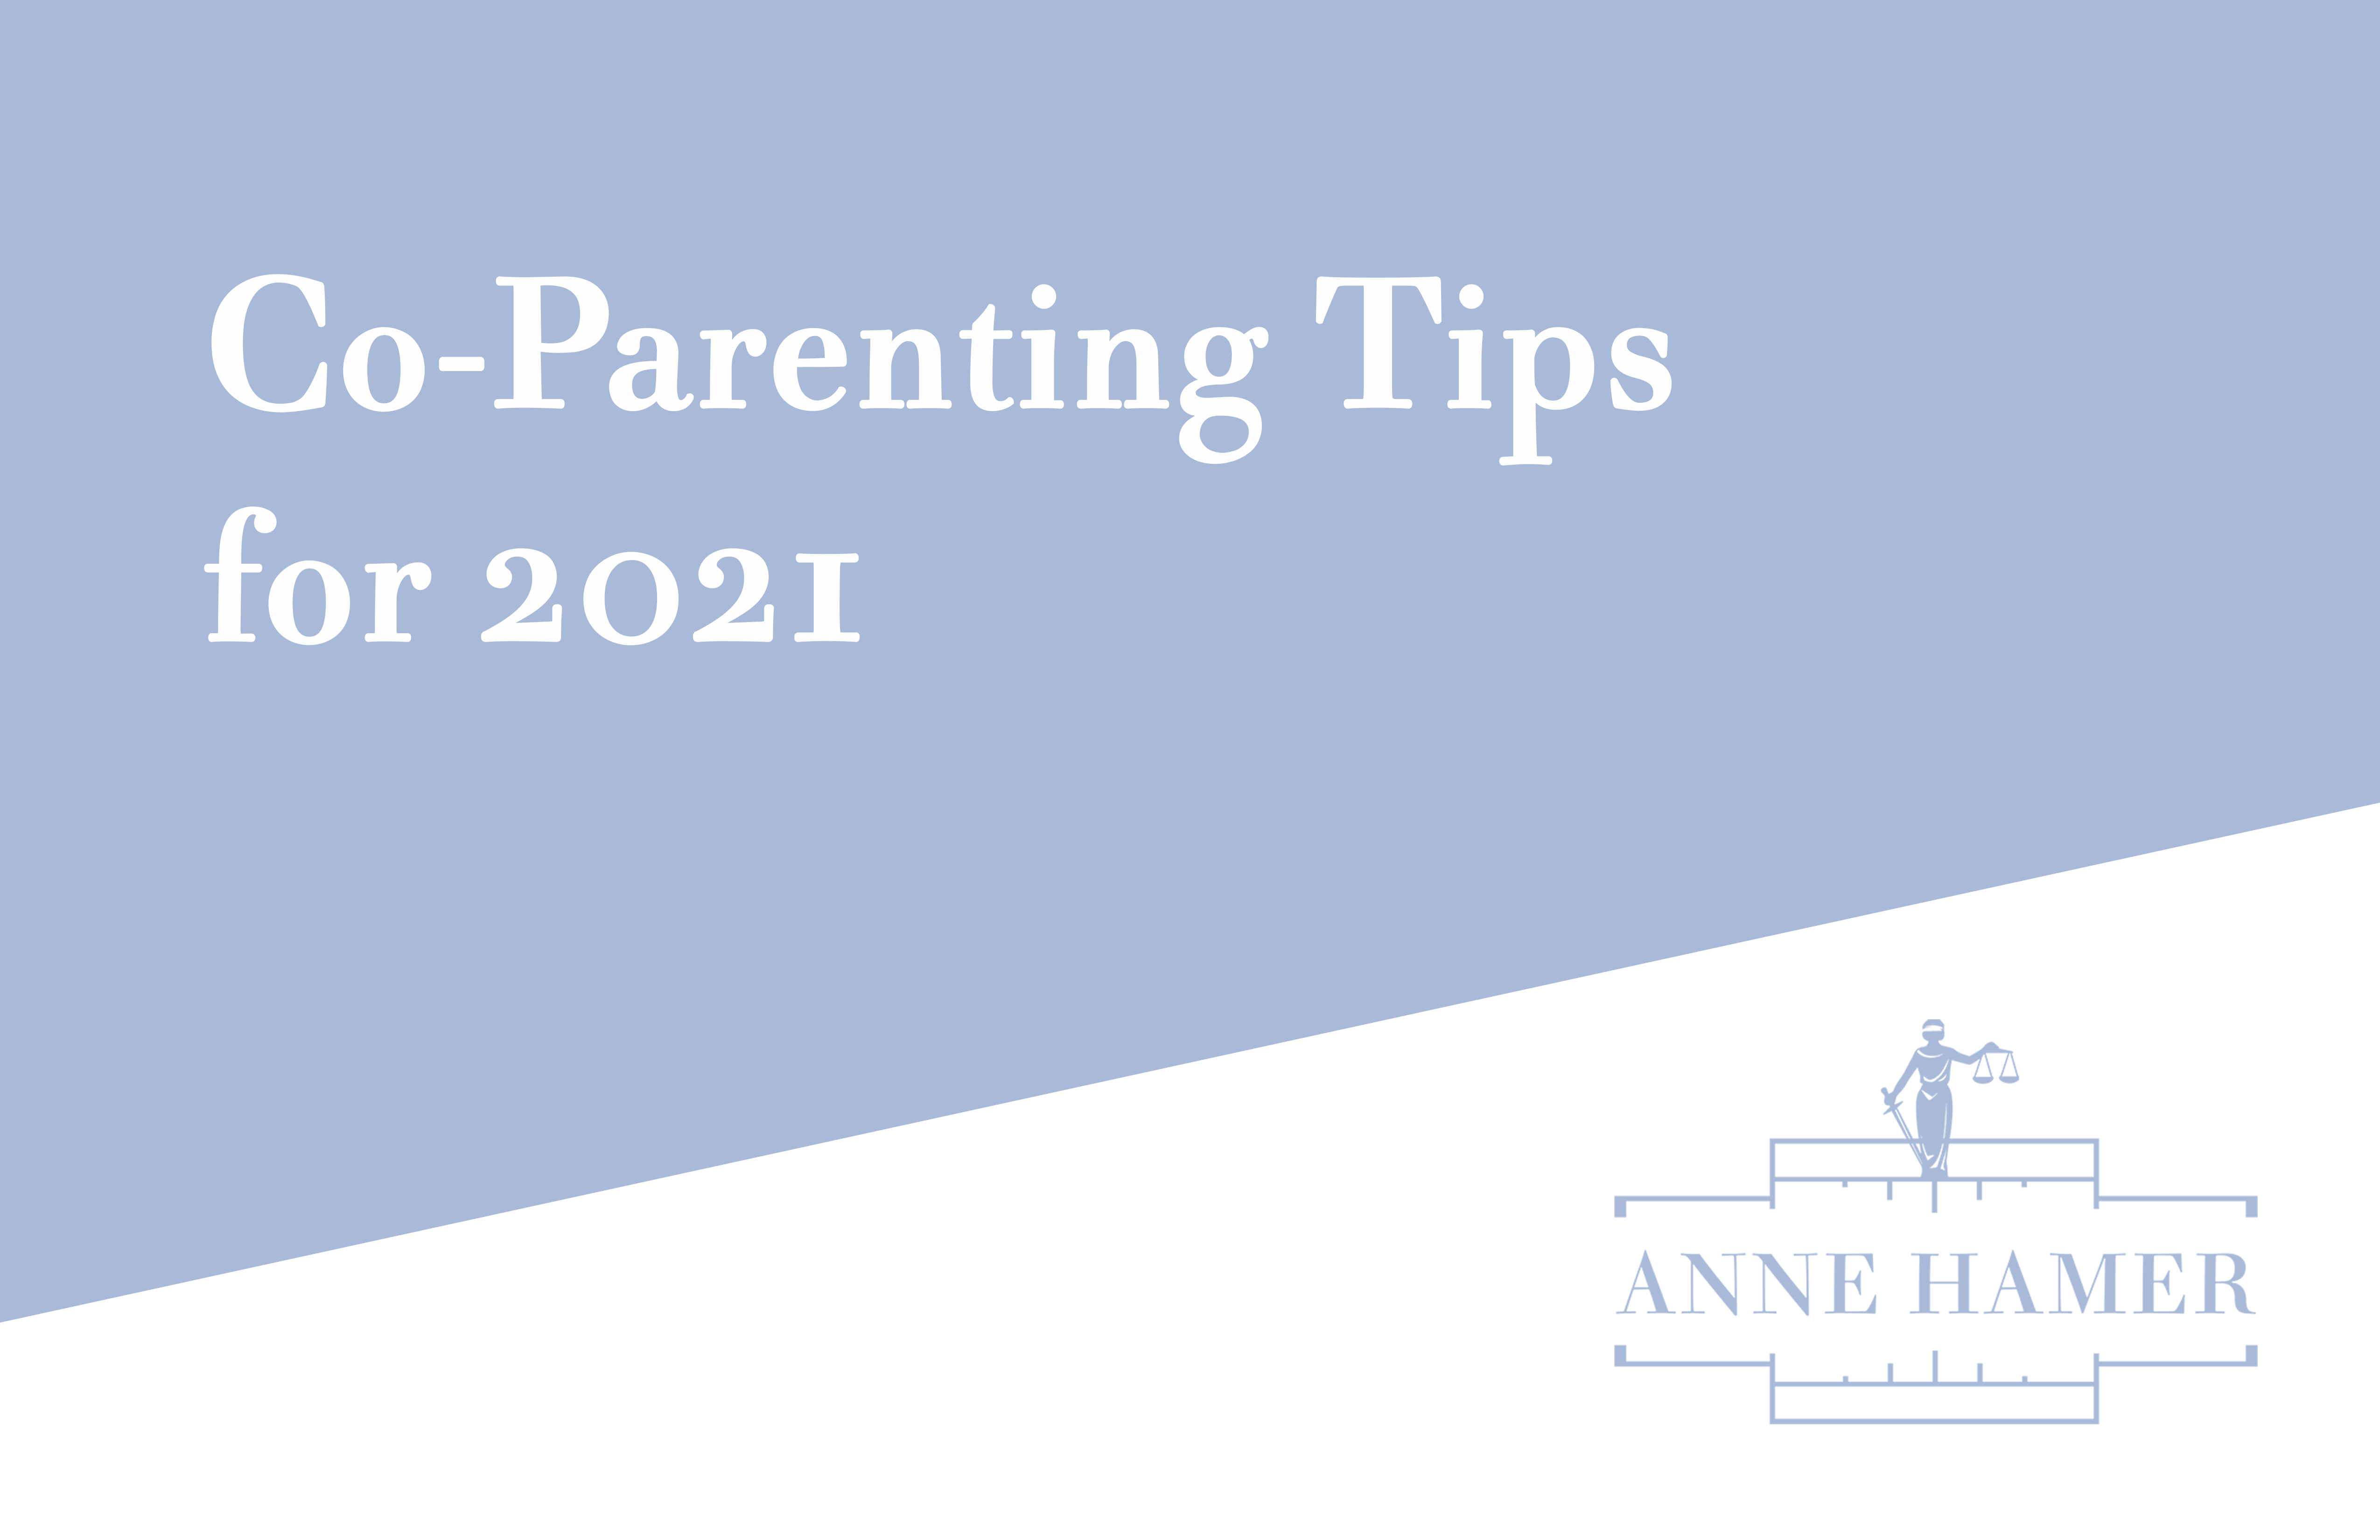 Co-Parenting Tips for 2021